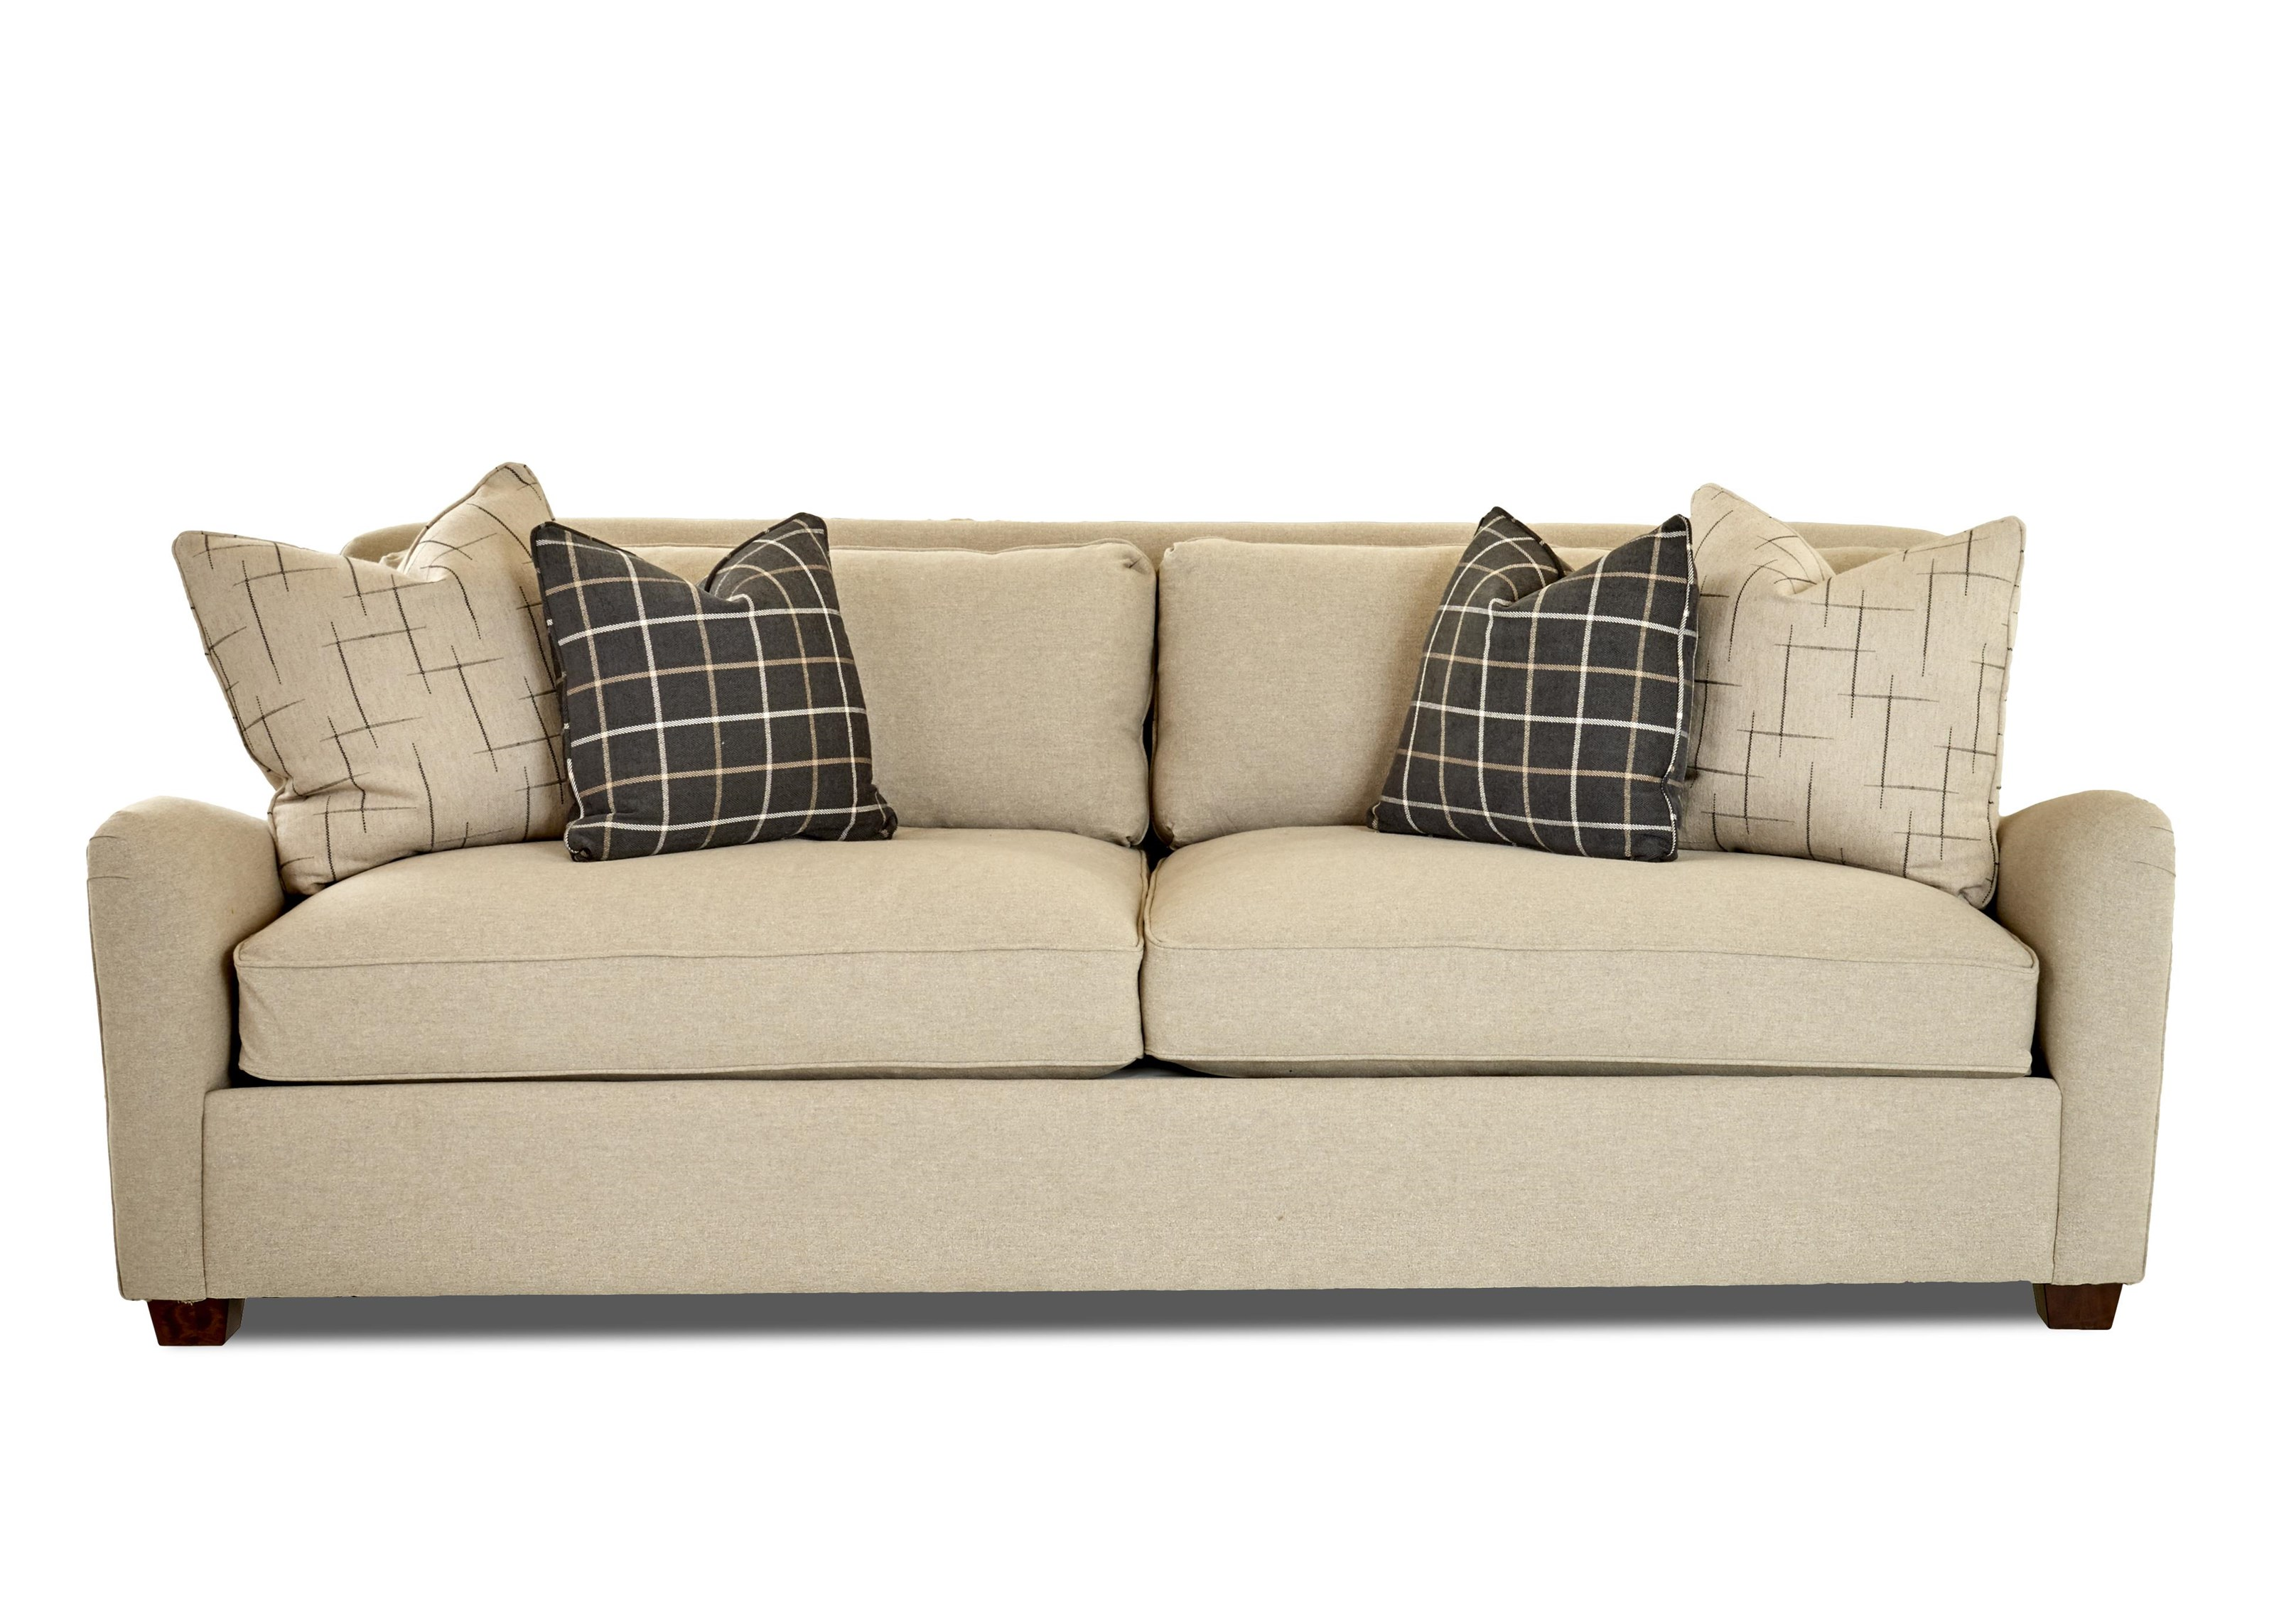 Klaussner Reflection Distinctions By Sofa Item Number D76700s